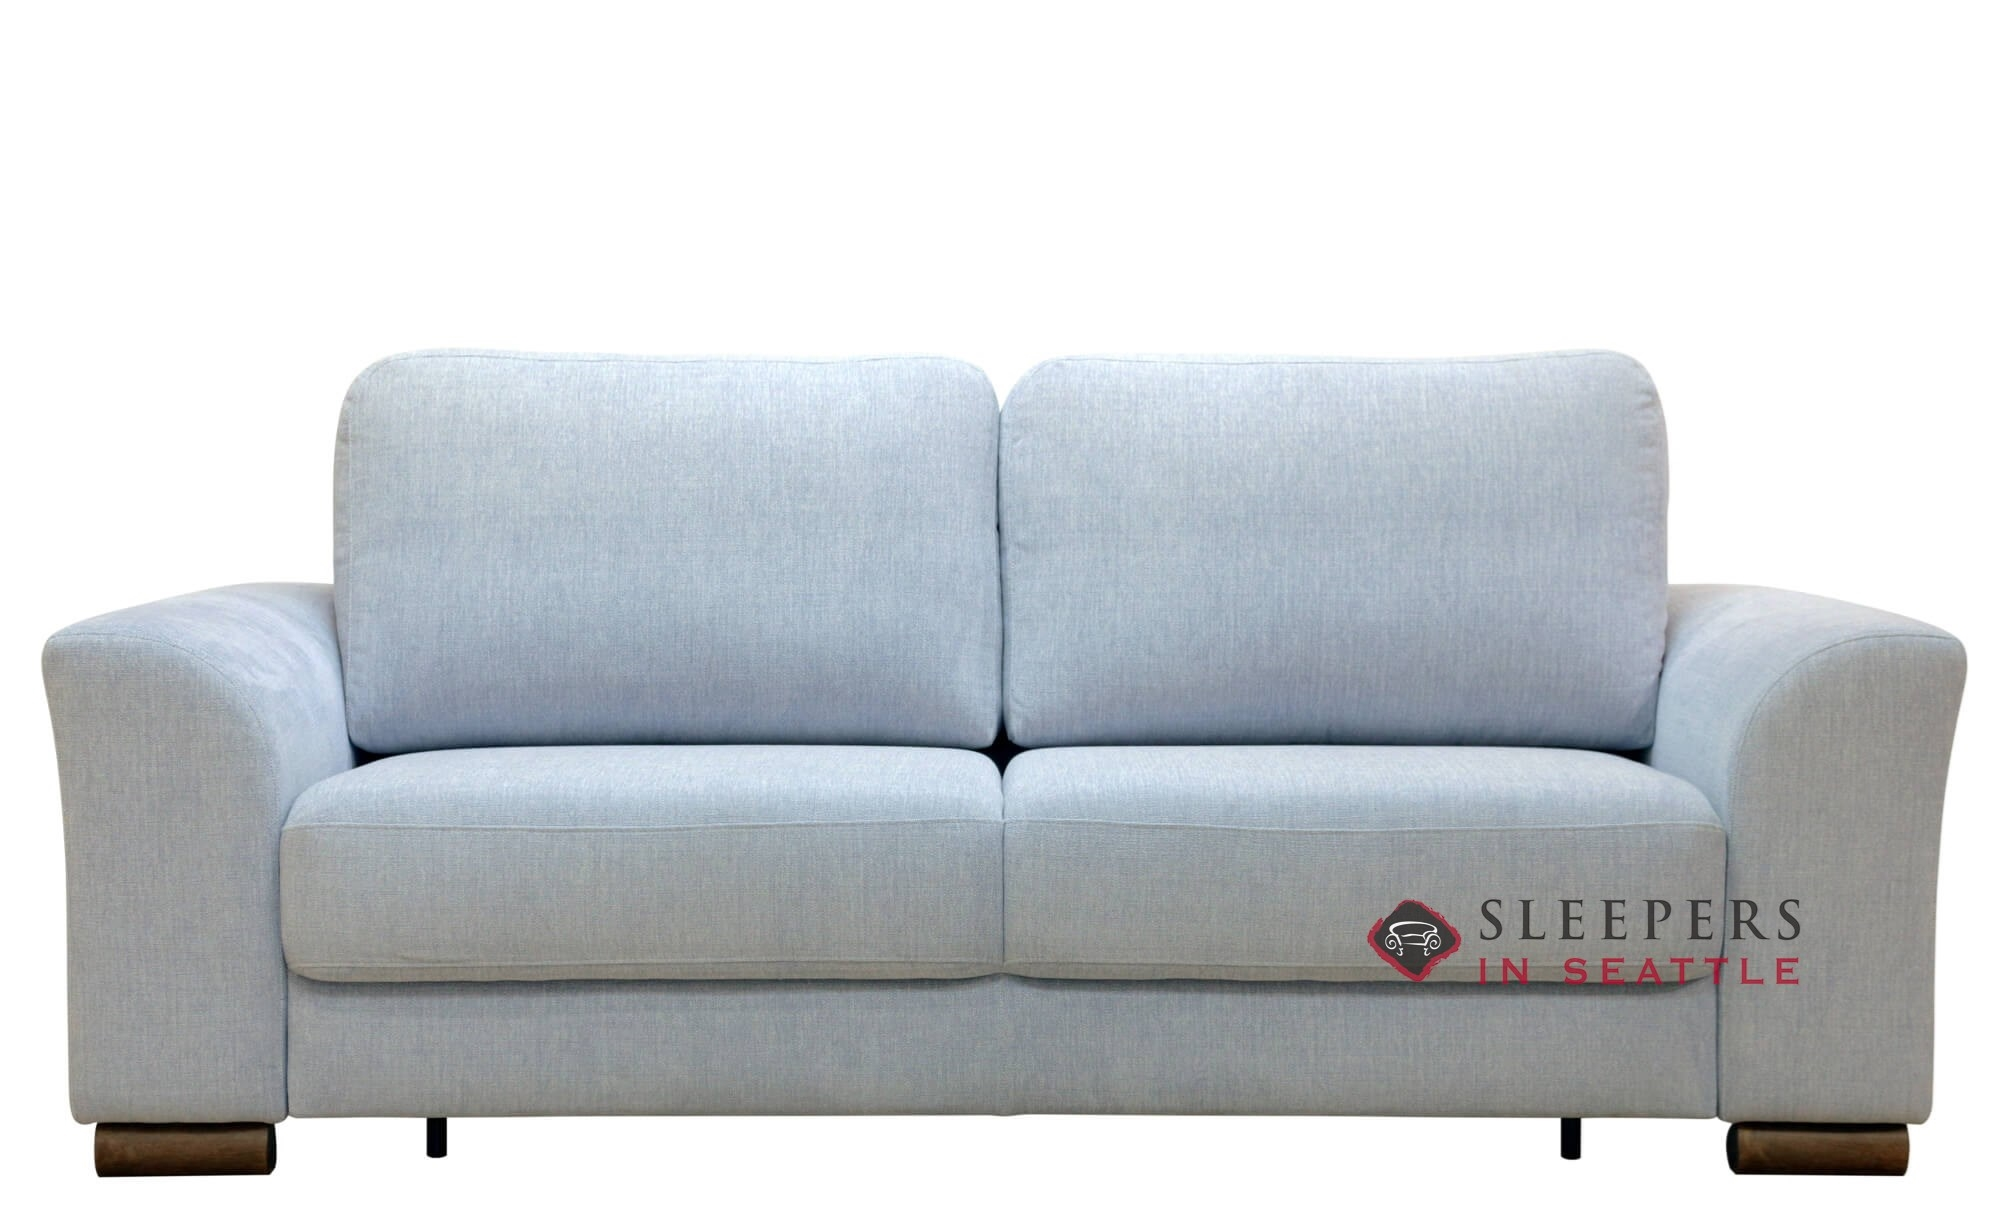 Sofa Queen Quick Ship Malibu Queen Fabric Sofa By Luonto Fast Shipping Malibu Queen Sofa Bed Sleepersinseattle